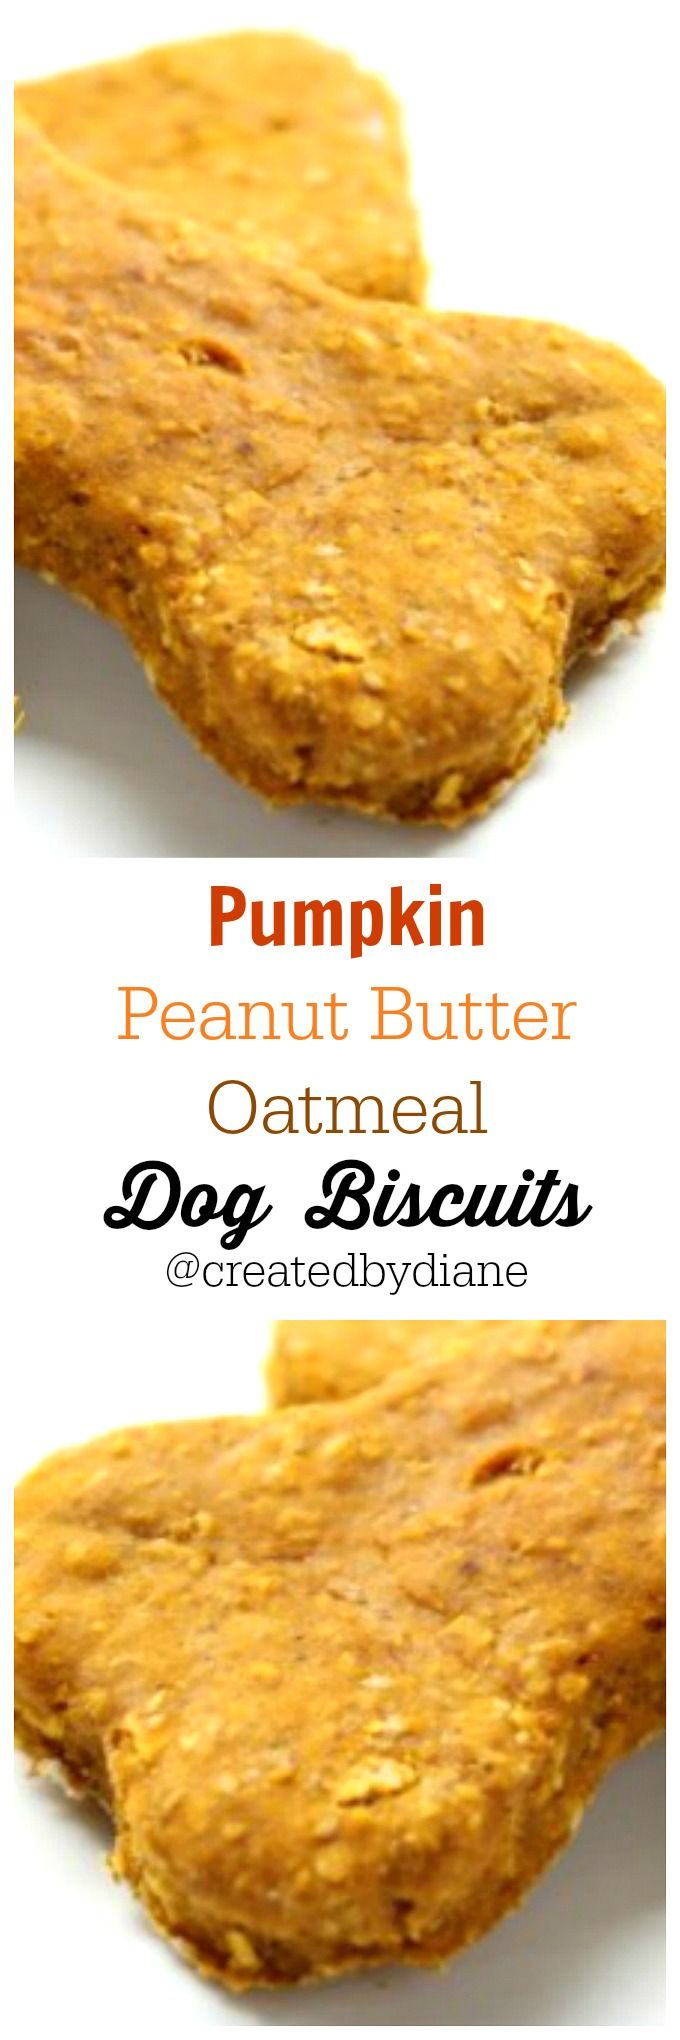 pumpkin peanut butter oatmeal dog biscuits @createdbydiane (Homemade Butter Granola Bars)